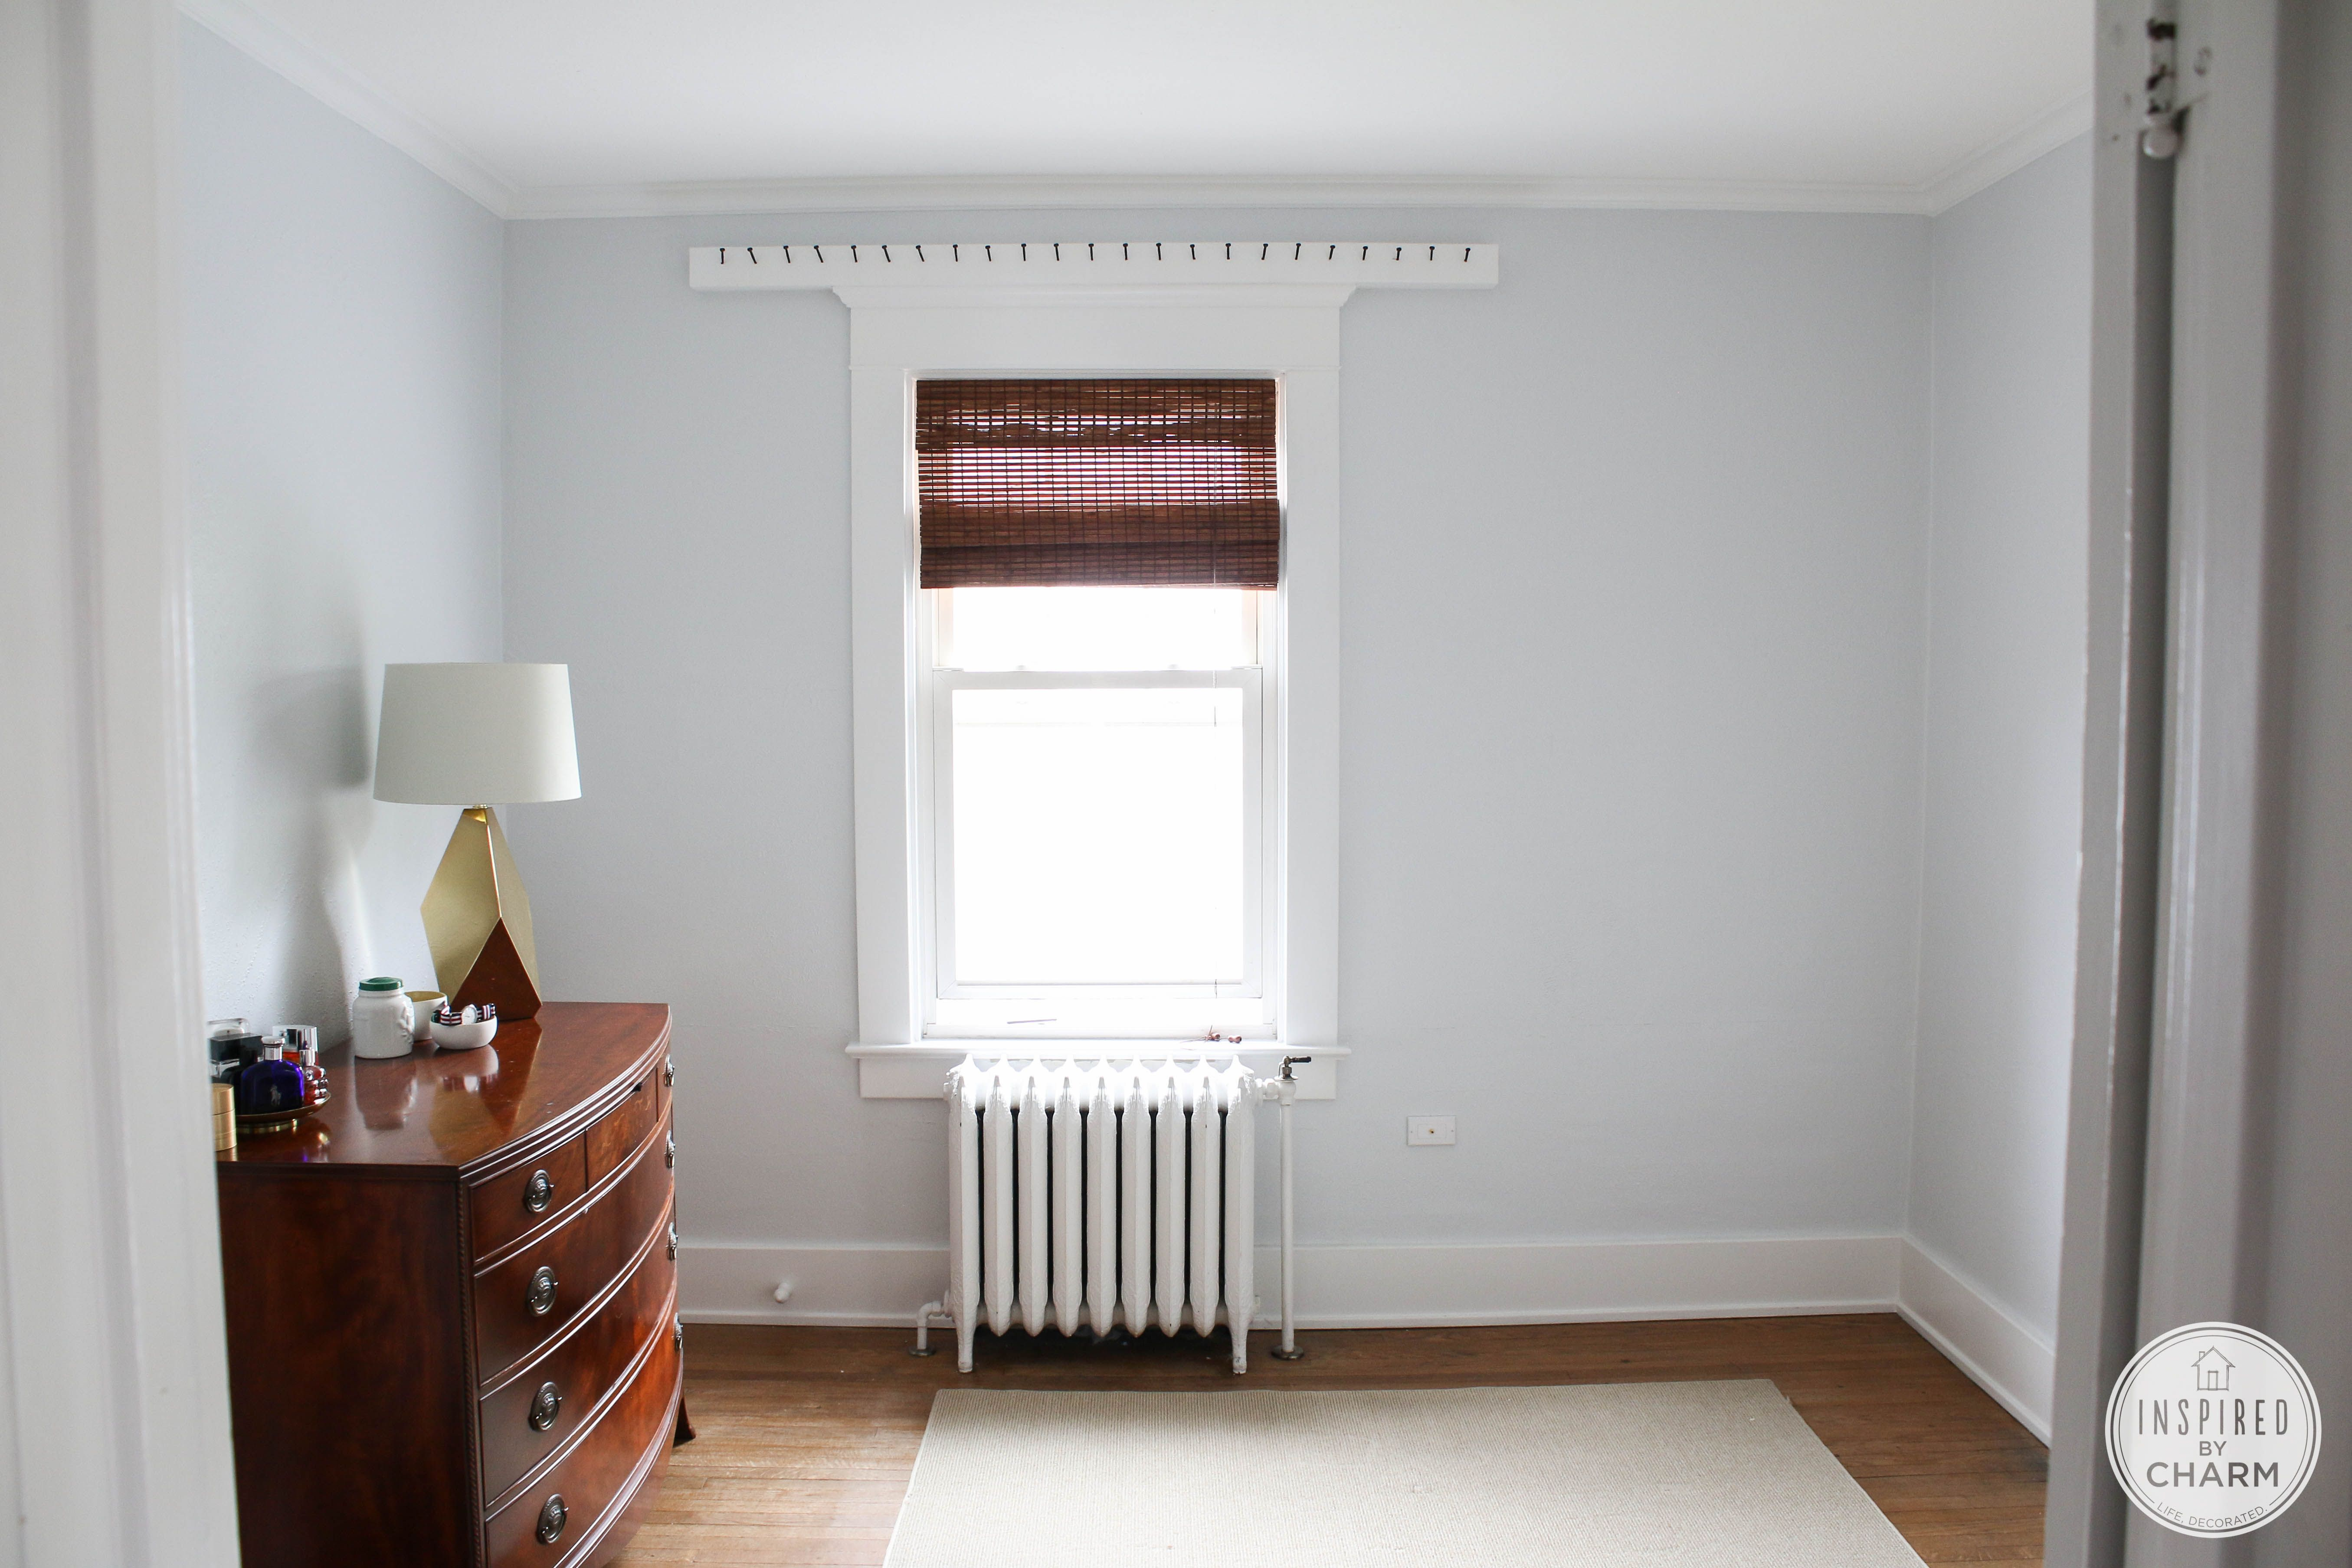 My Bedroom: Paint and a Plan